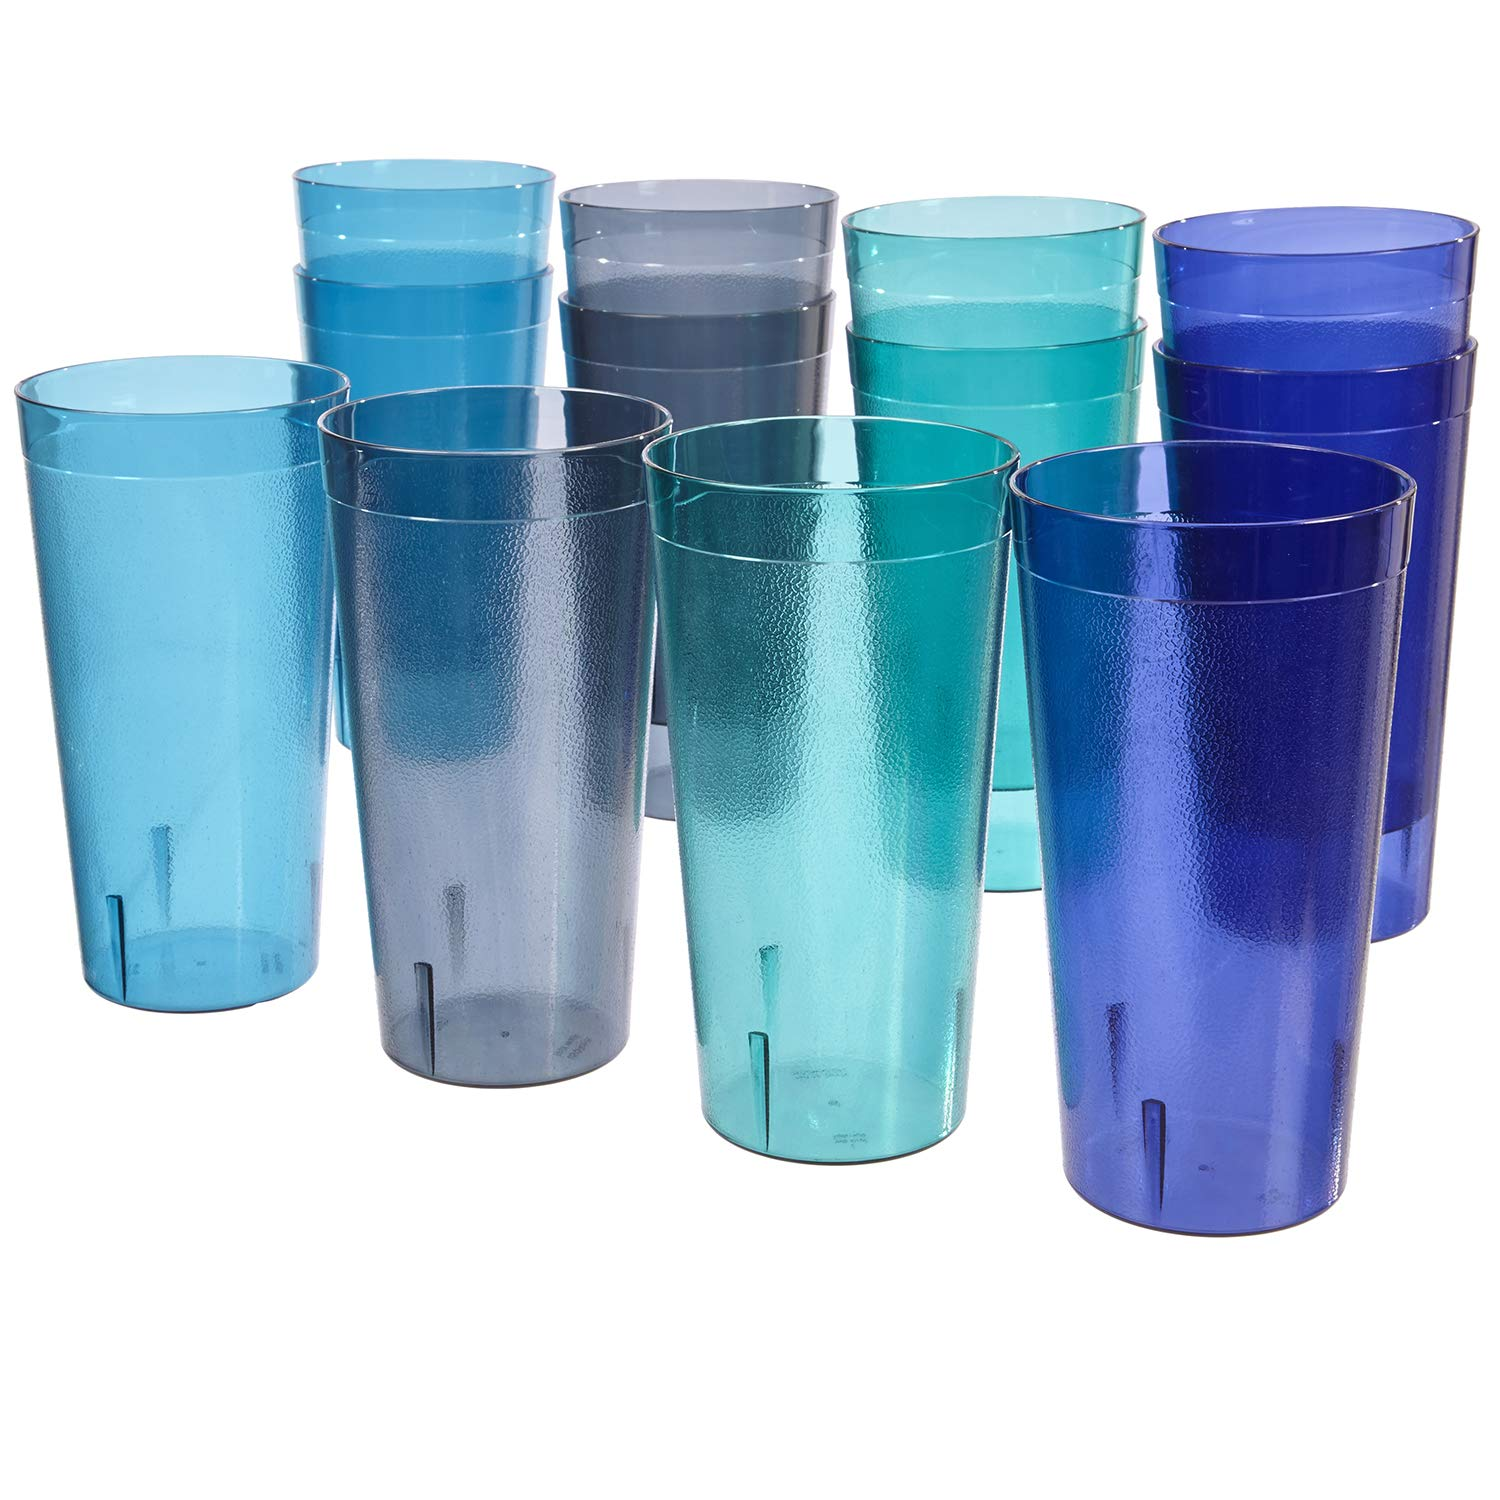 Café 32-ounce Plastic Restaurant-Style Tumblers | set of 12 in 4 Coastal Colors by US Acrylic